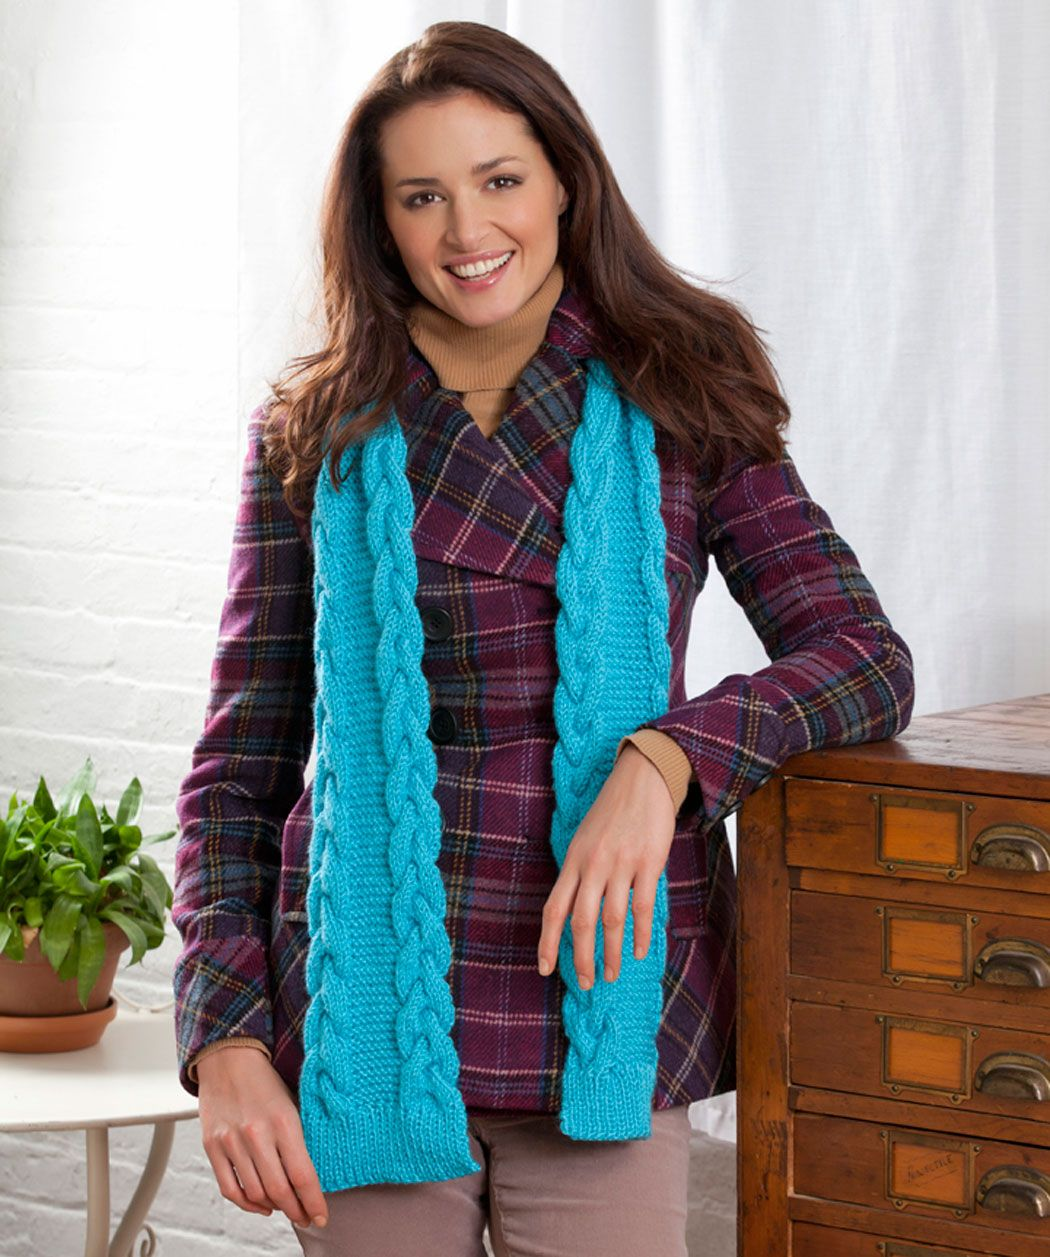 There's an interesting edge to this cozy scarf. Knit with braided cables and rib in between, this soft easy-care yarn is just the thing for warmth that feels good!